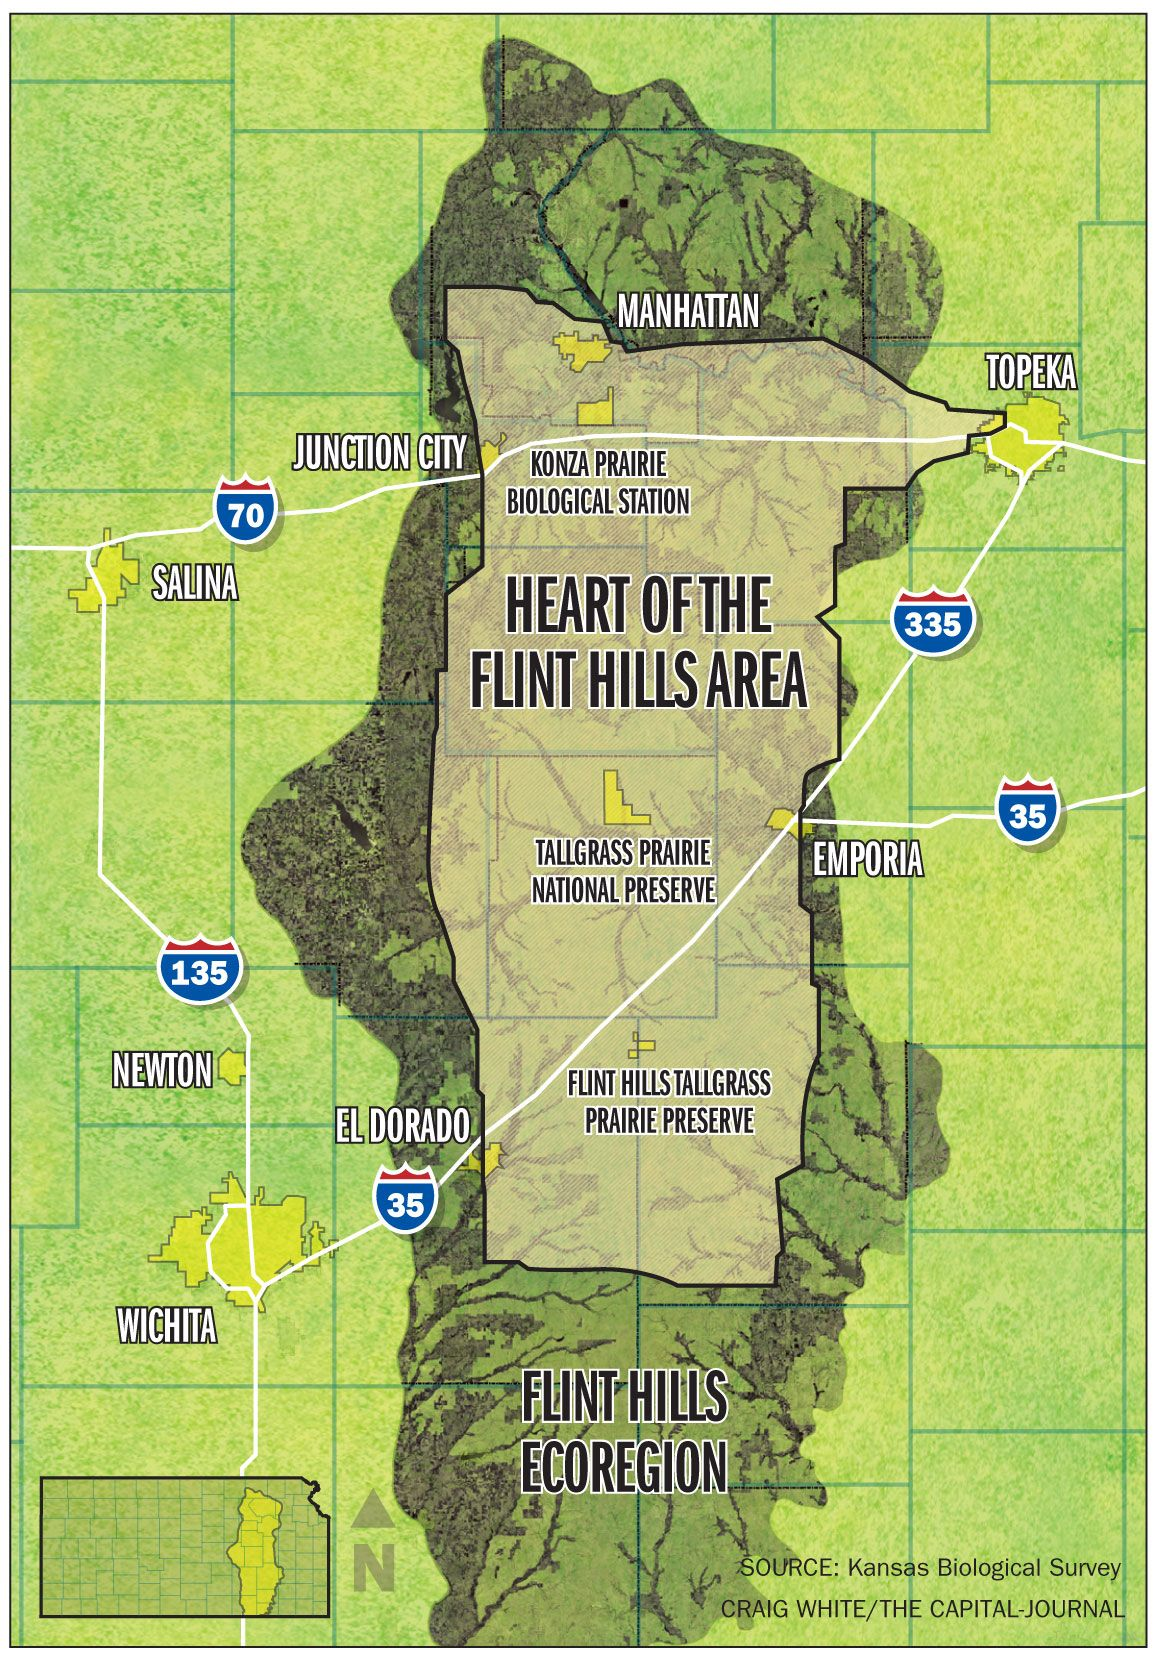 Map of the Flint Hills area. Last stop... Newton, Marion & Pea ... Kansas On The Map Of Usa on state of kansas usa, kansas map with cities, the 50 states map with the usa, kansas statehood, kansas state map usa, philadelphia map usa, boston map usa, kansas on us map,